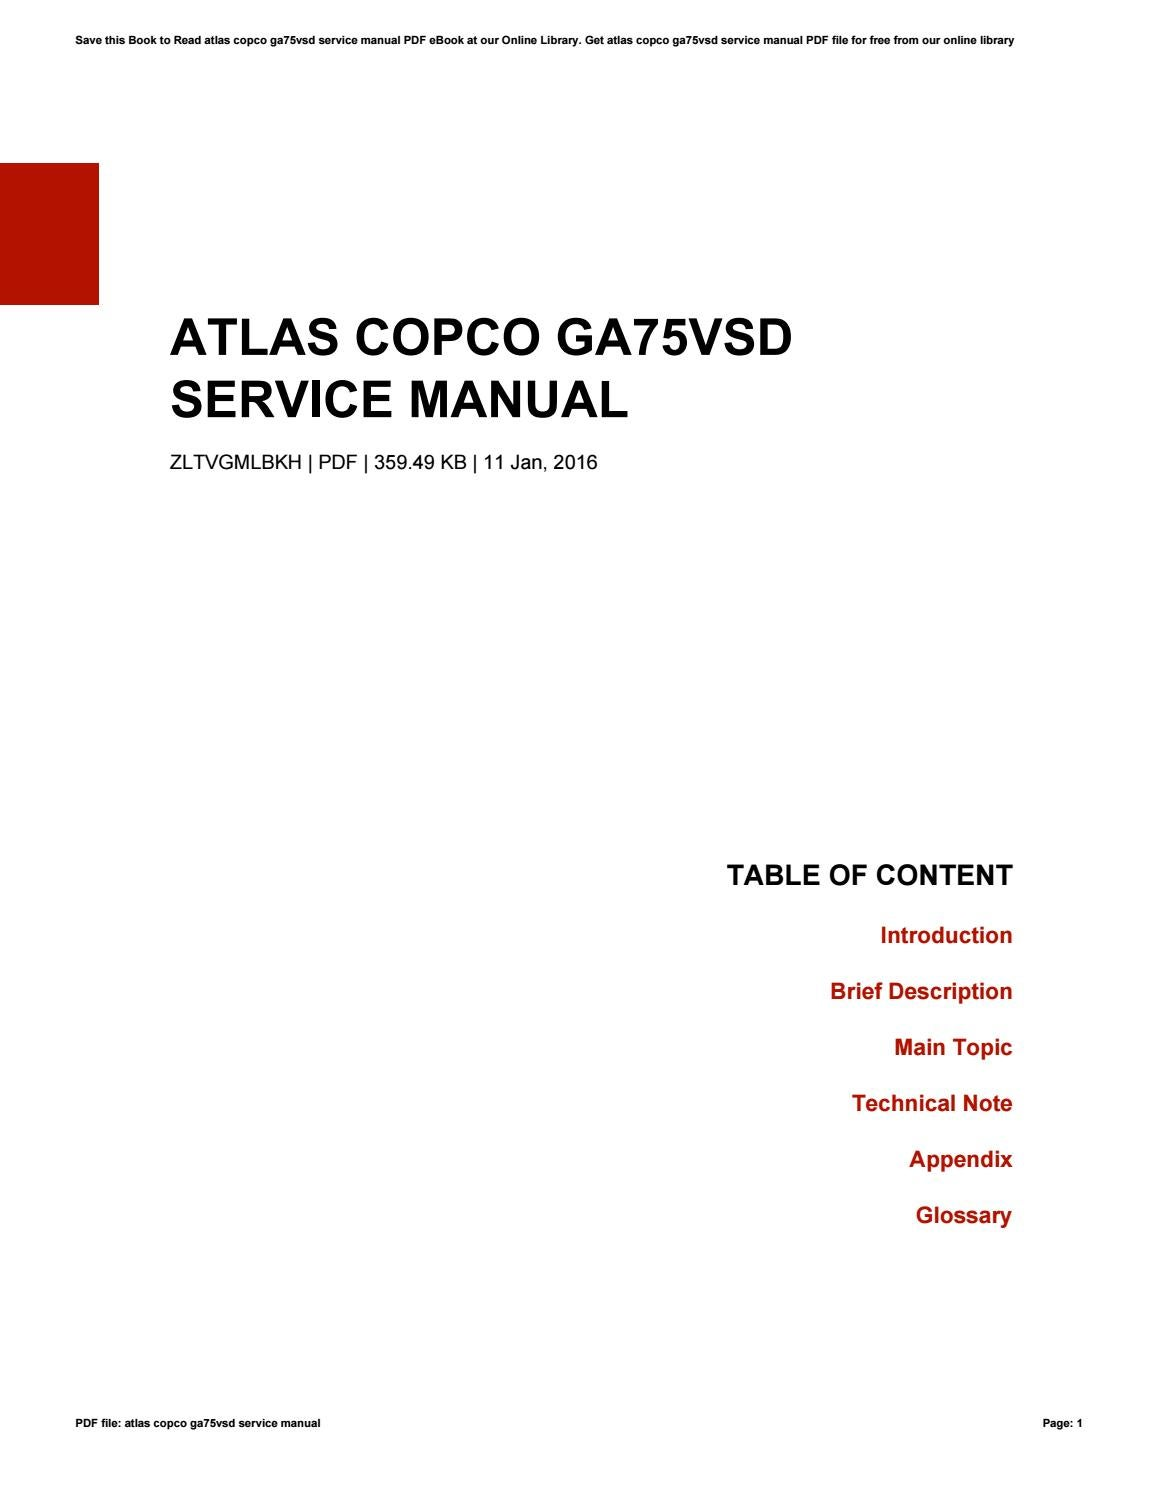 Atlas copco ga75vsd service manual by ErnestMcDowell4614